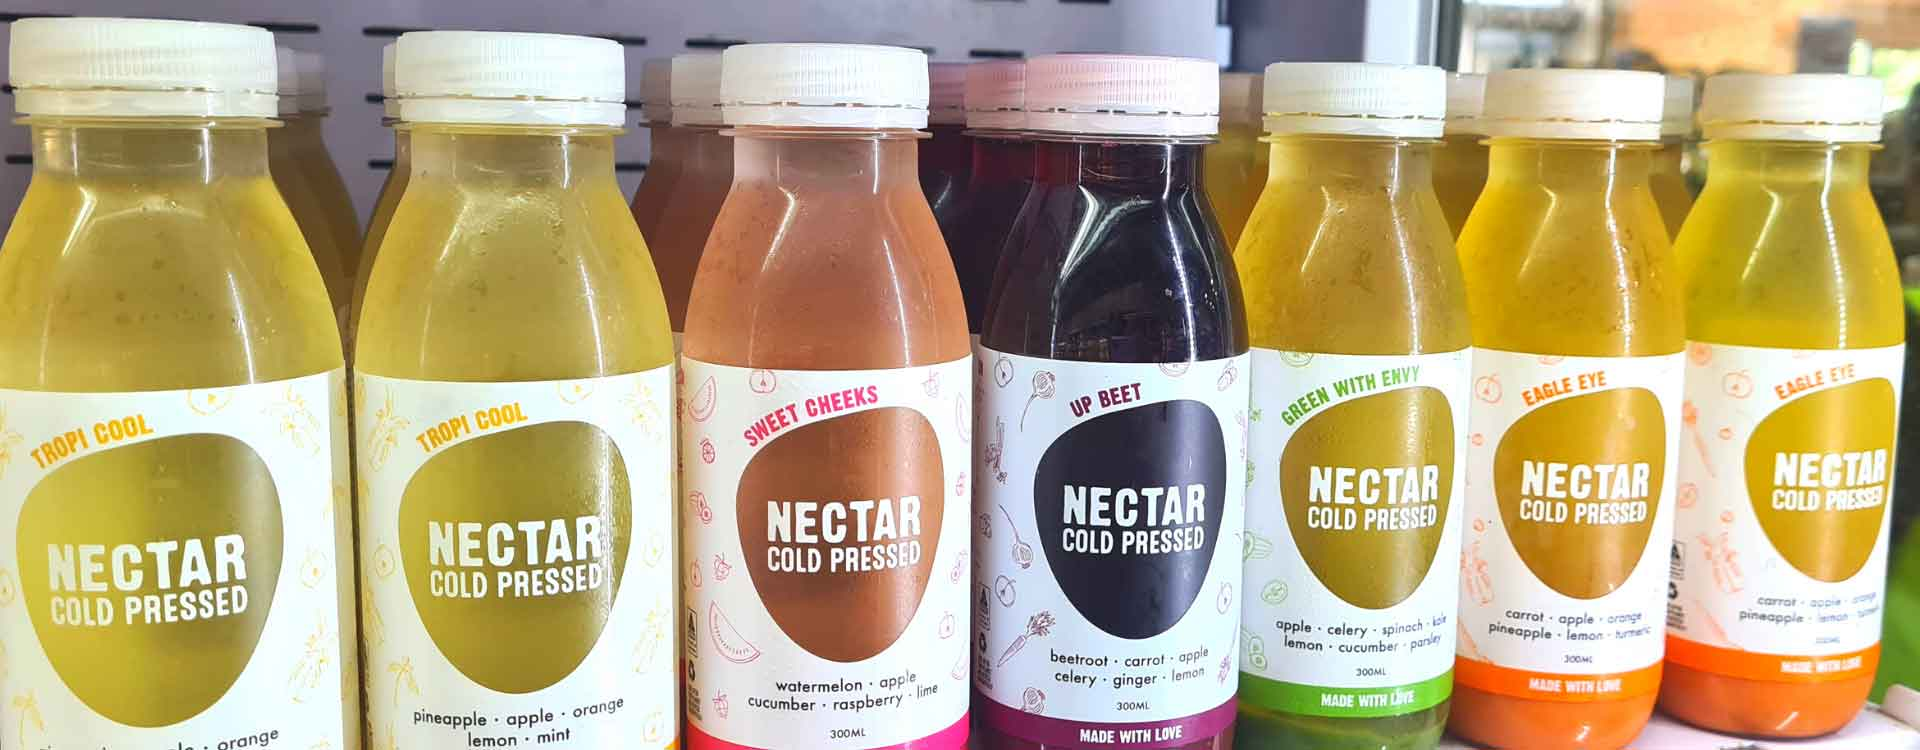 Synergy Food Group Contract Juice Beverage Manufacturing Co Packing Private Label Sydney Australia